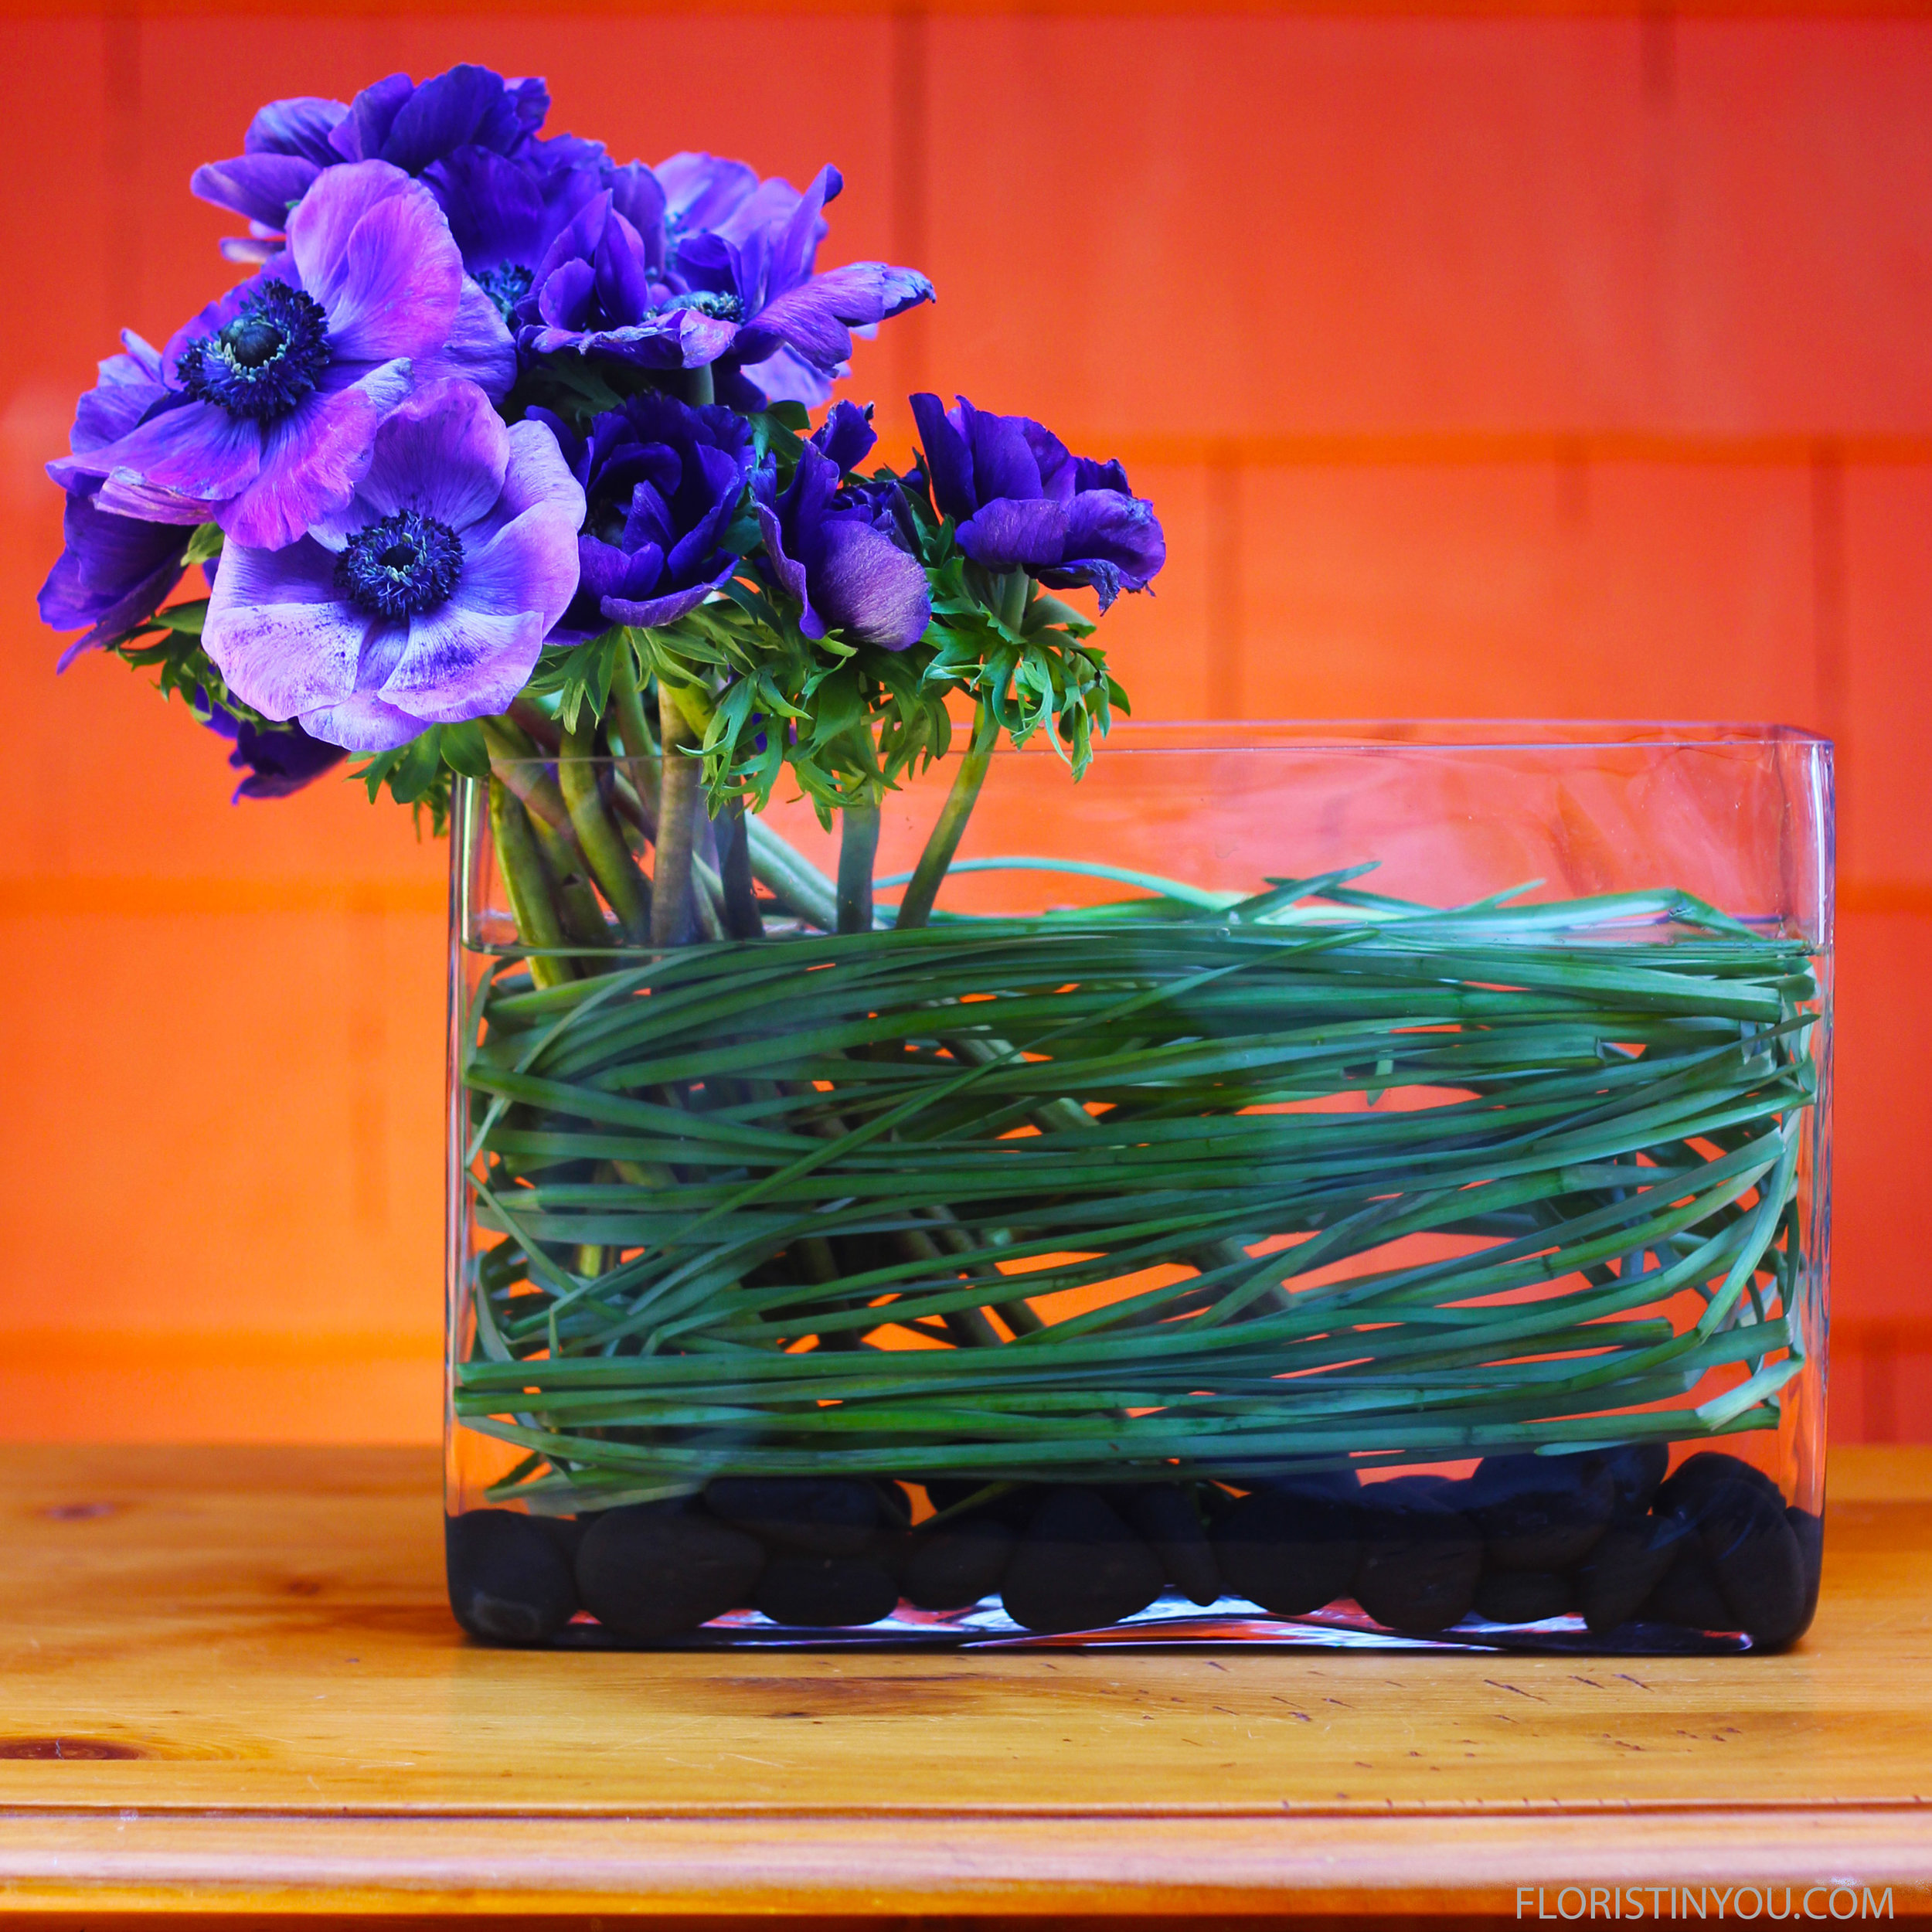 Place purple Anemones on left side of vase.